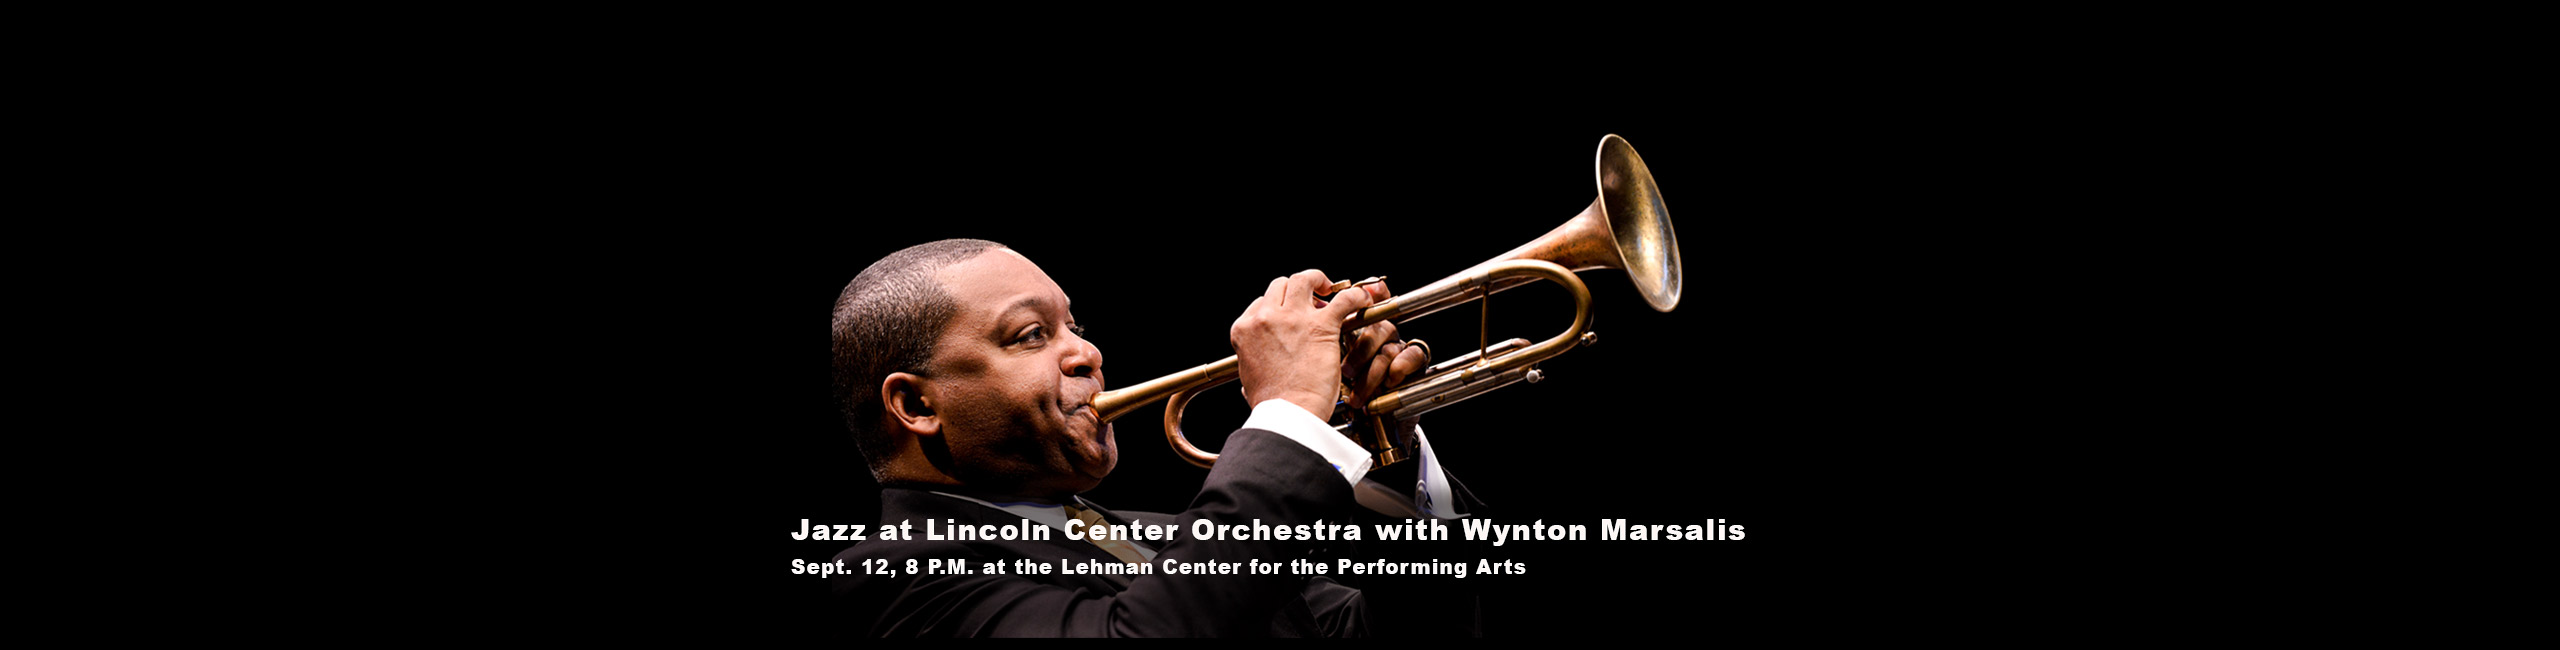 Jazz at Lincoln Center Orchestra with Wynton Marsalis Sept. 12, 8 P.M. at the Lehman Center for the Performing Arts